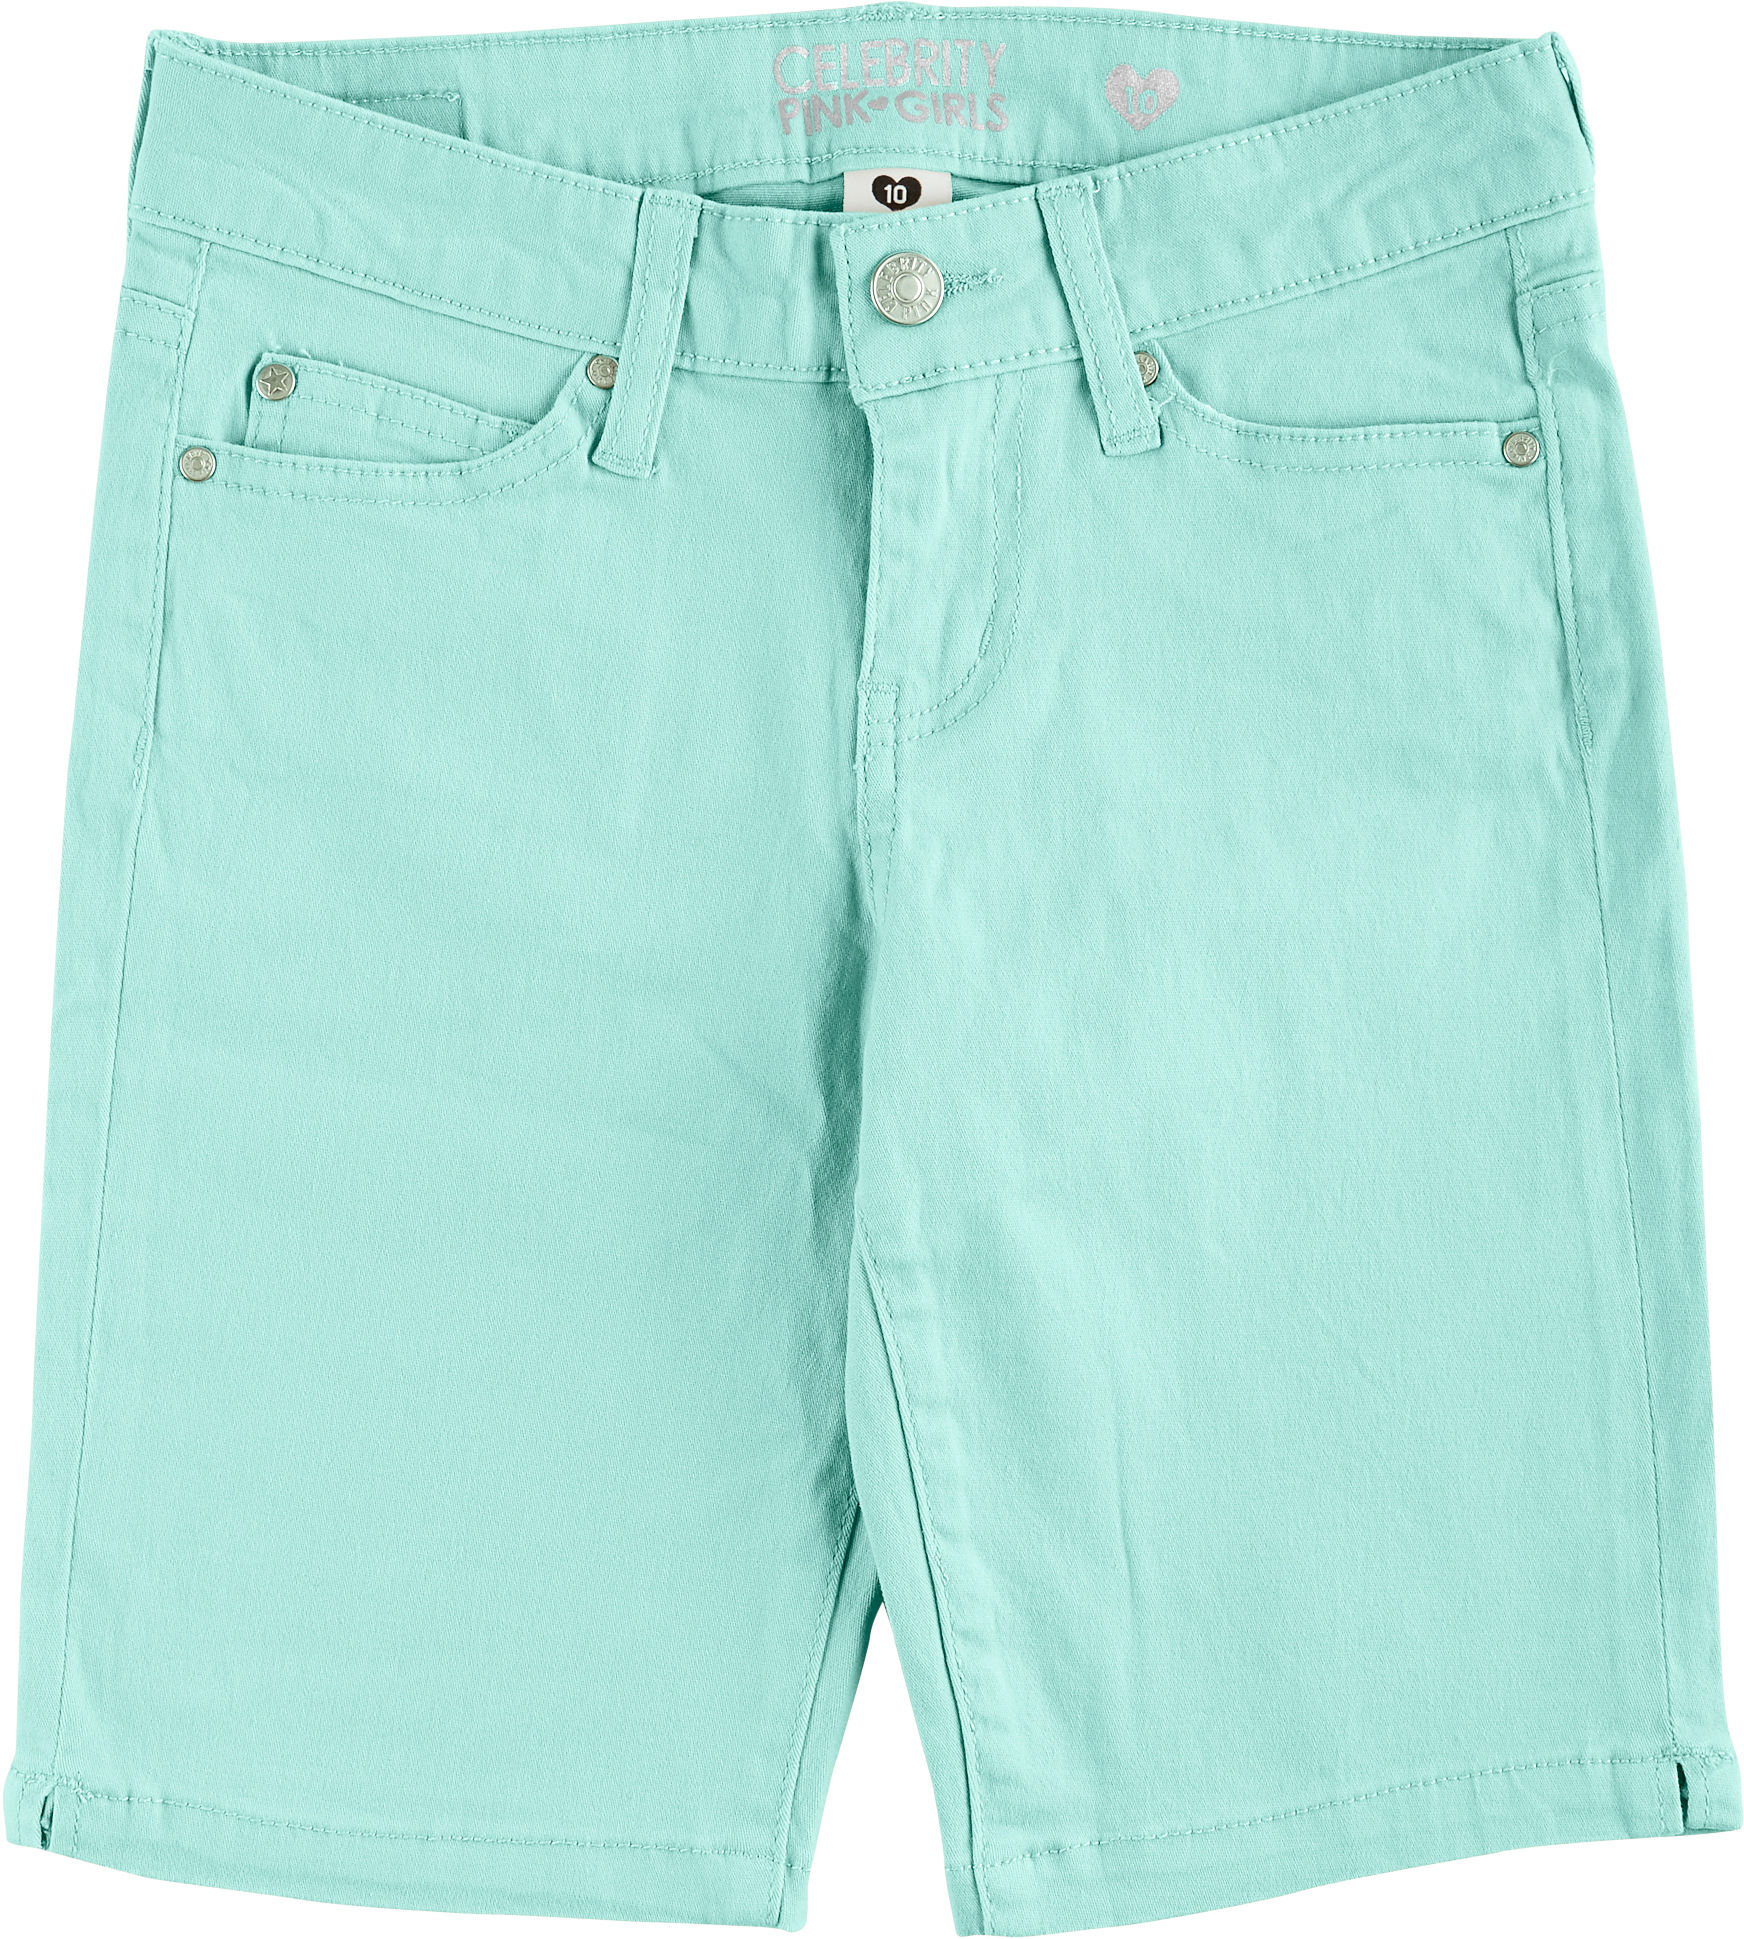 Girls' shorts are a cute and comfortable warm-weather staple for any young lady. Whether she loves colorful knits or classic denim, she'll find a wide selection of options that suit her style. Sears offers quality designs for every body type, including girls plus and girls slim fits.